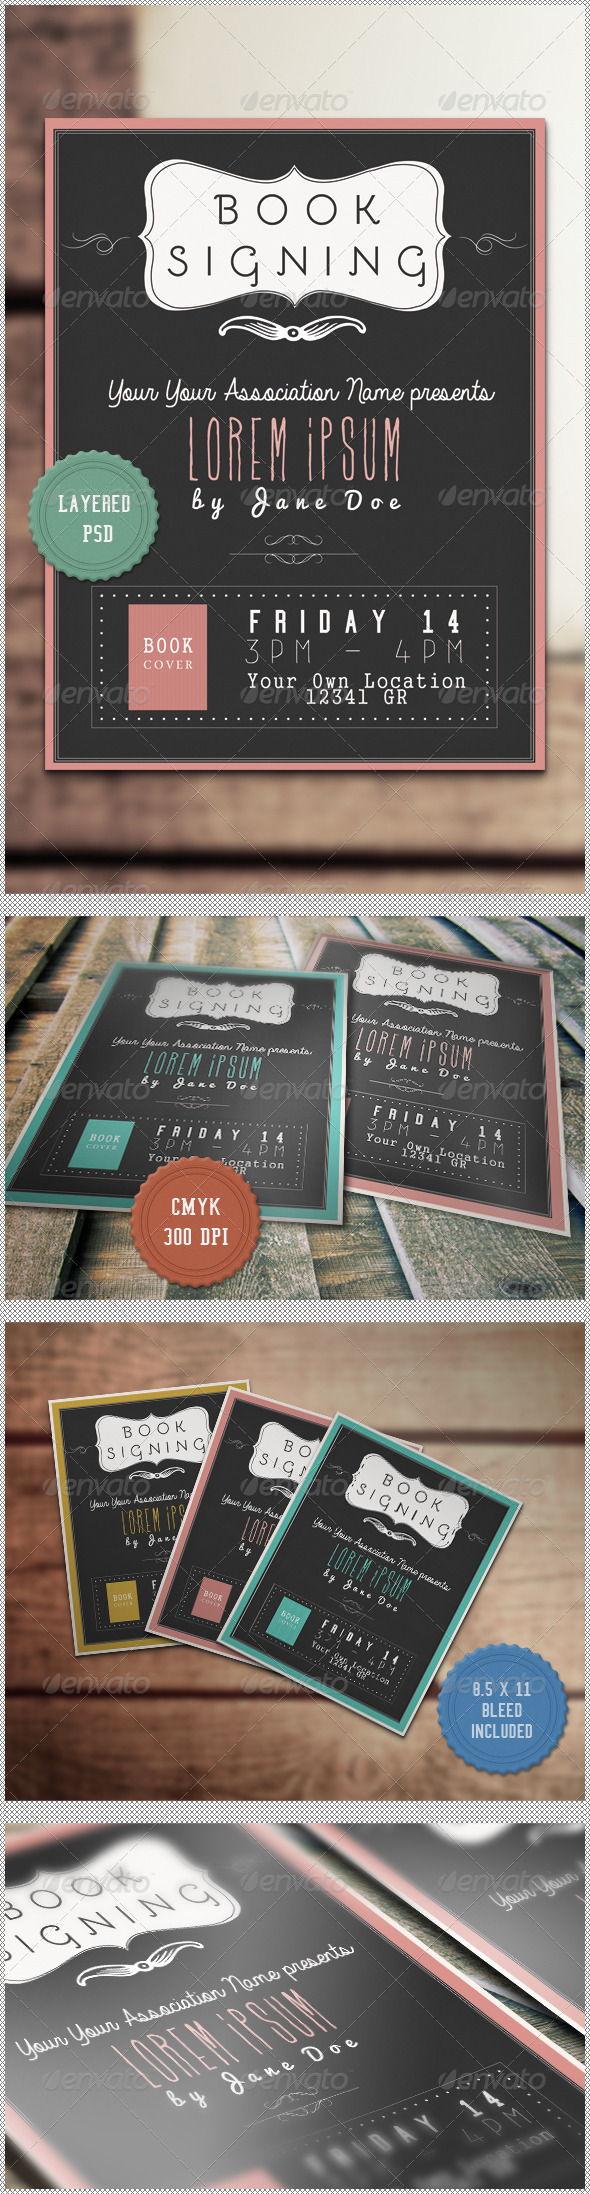 GraphicRiver Book Signing Flyer 4390222